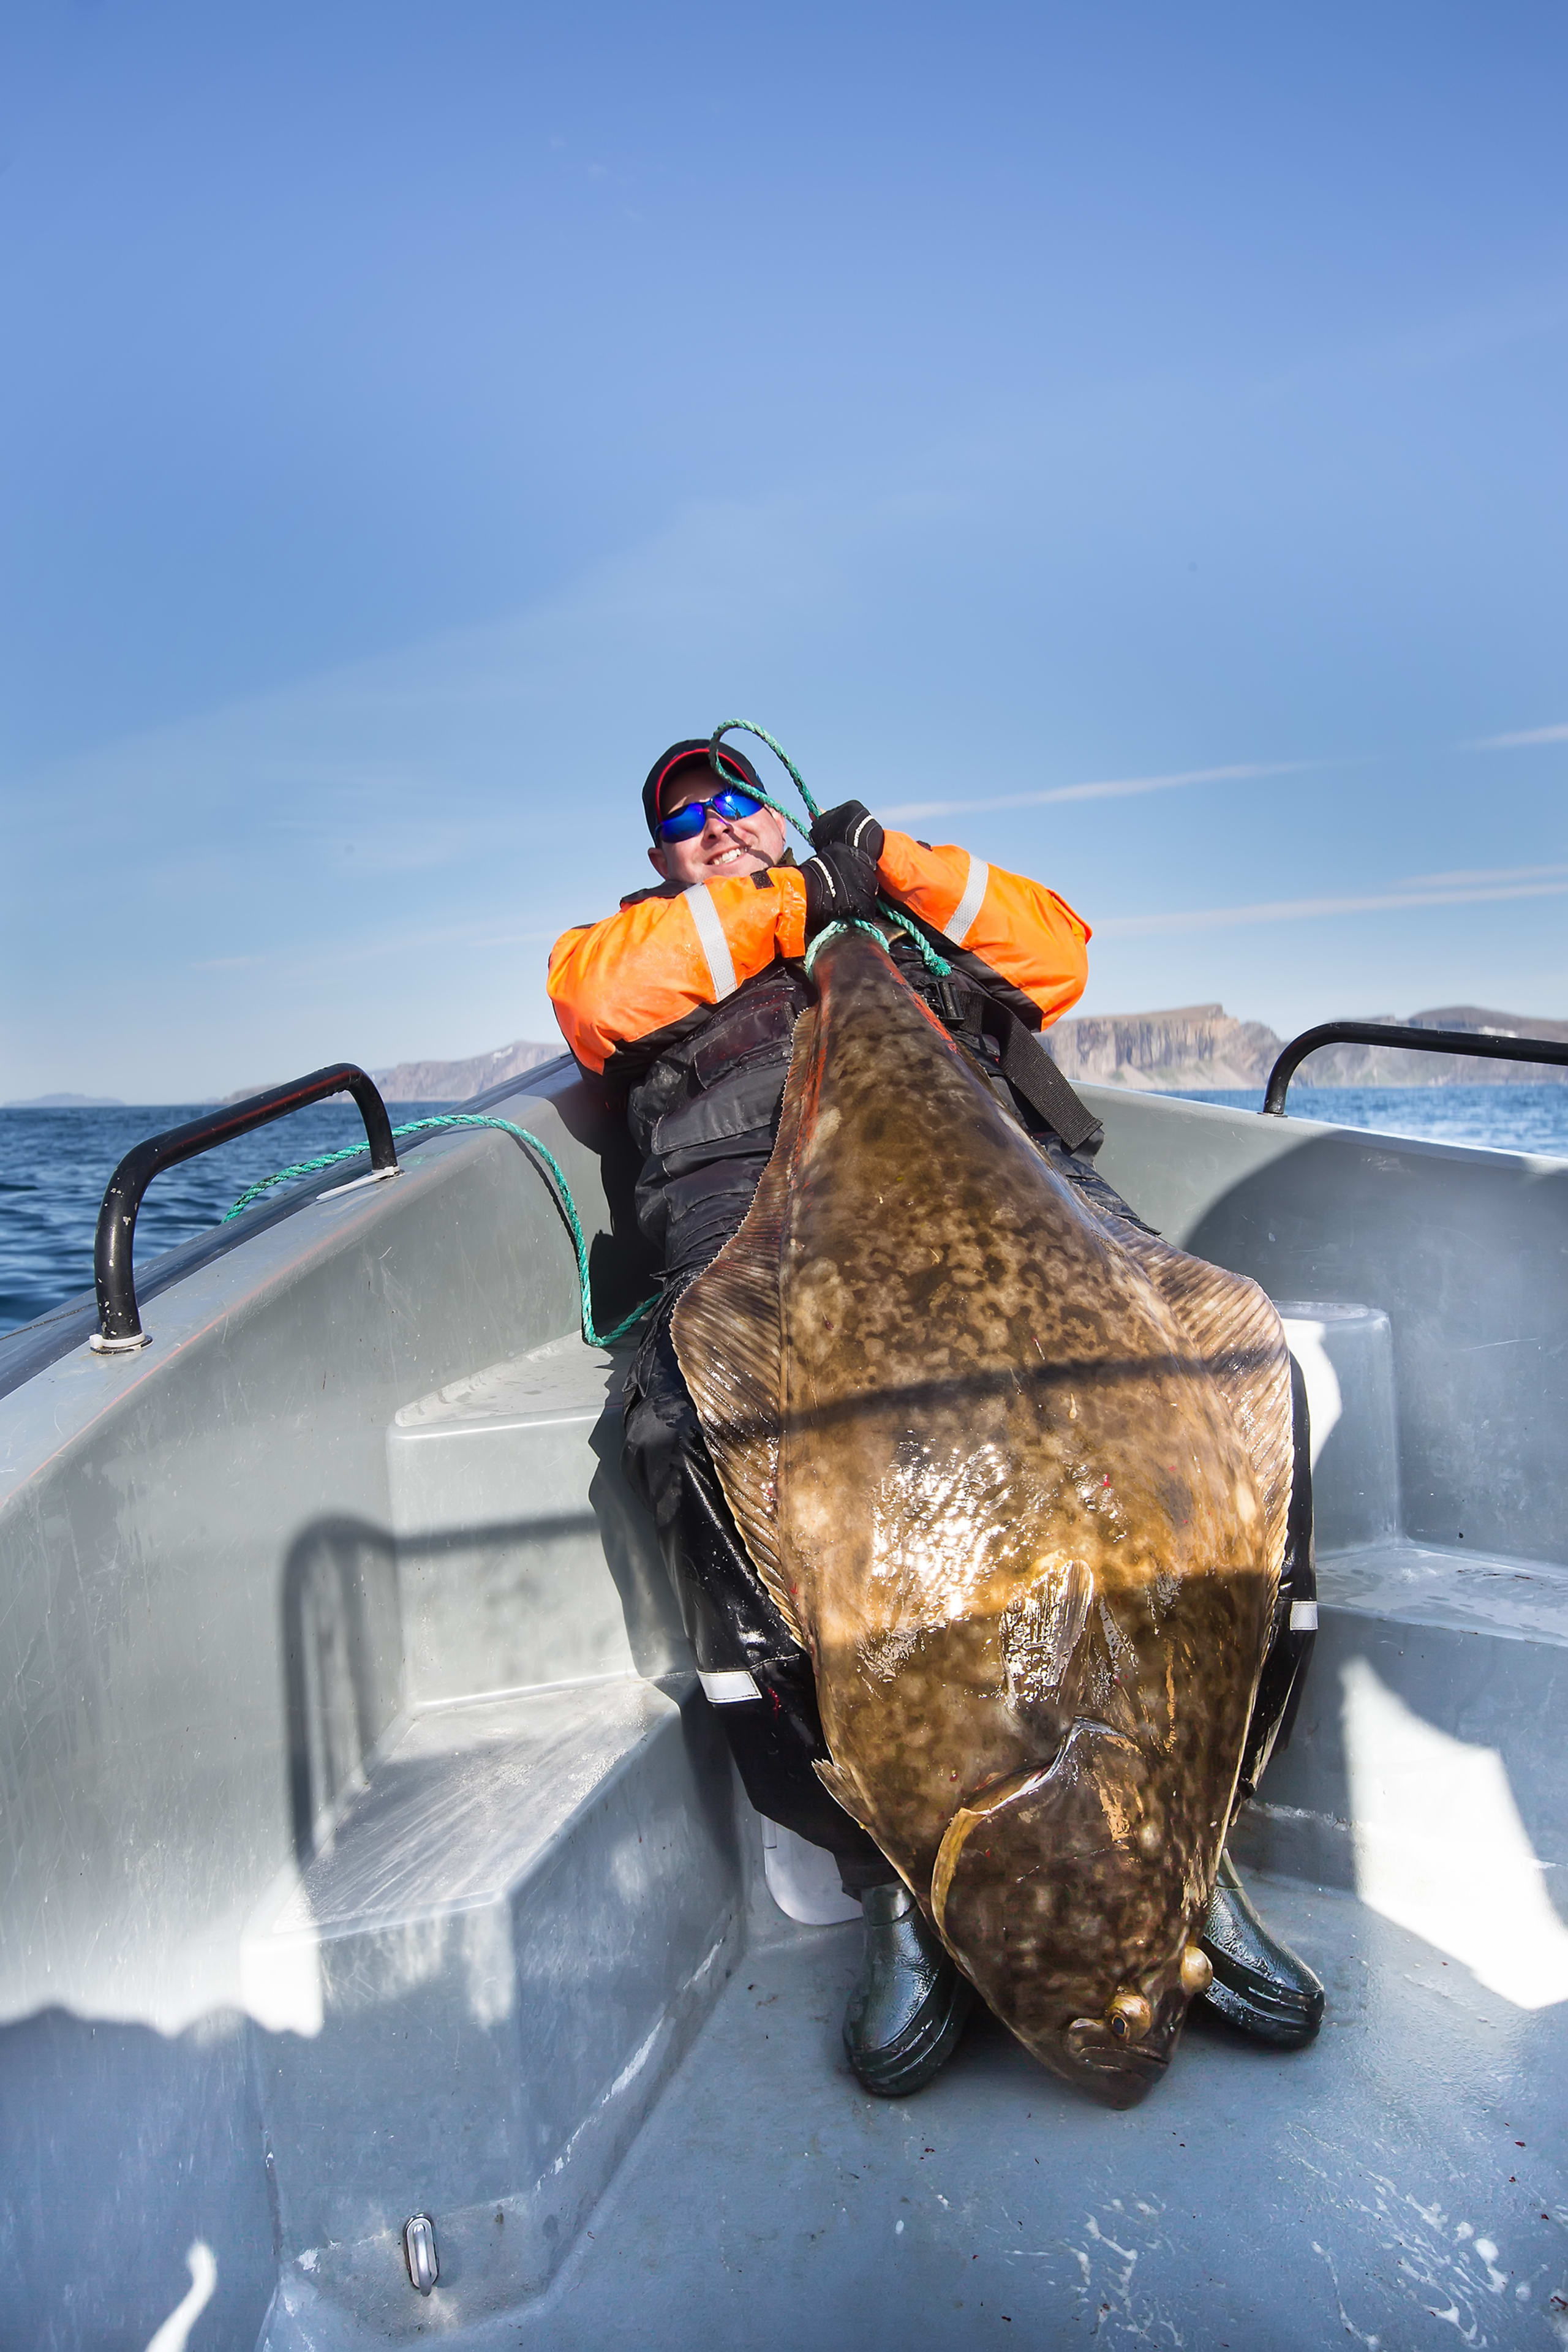 Large catch of Halibut